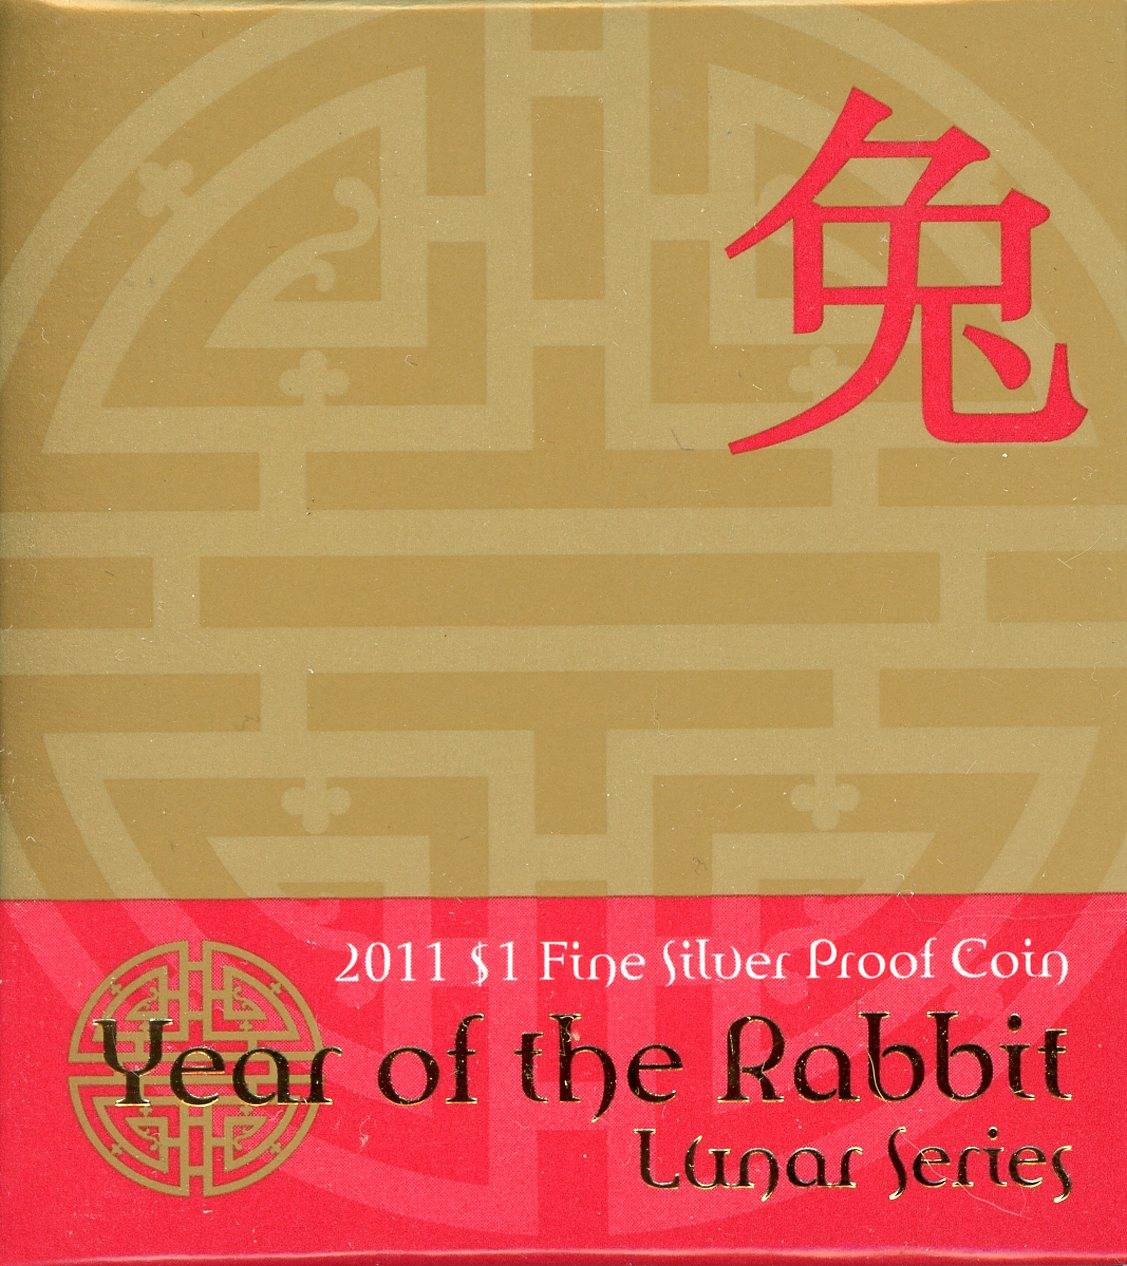 Thumbnail for 2011 Lunar Series - Year of the Rabbit $1 Silver Proof Coin